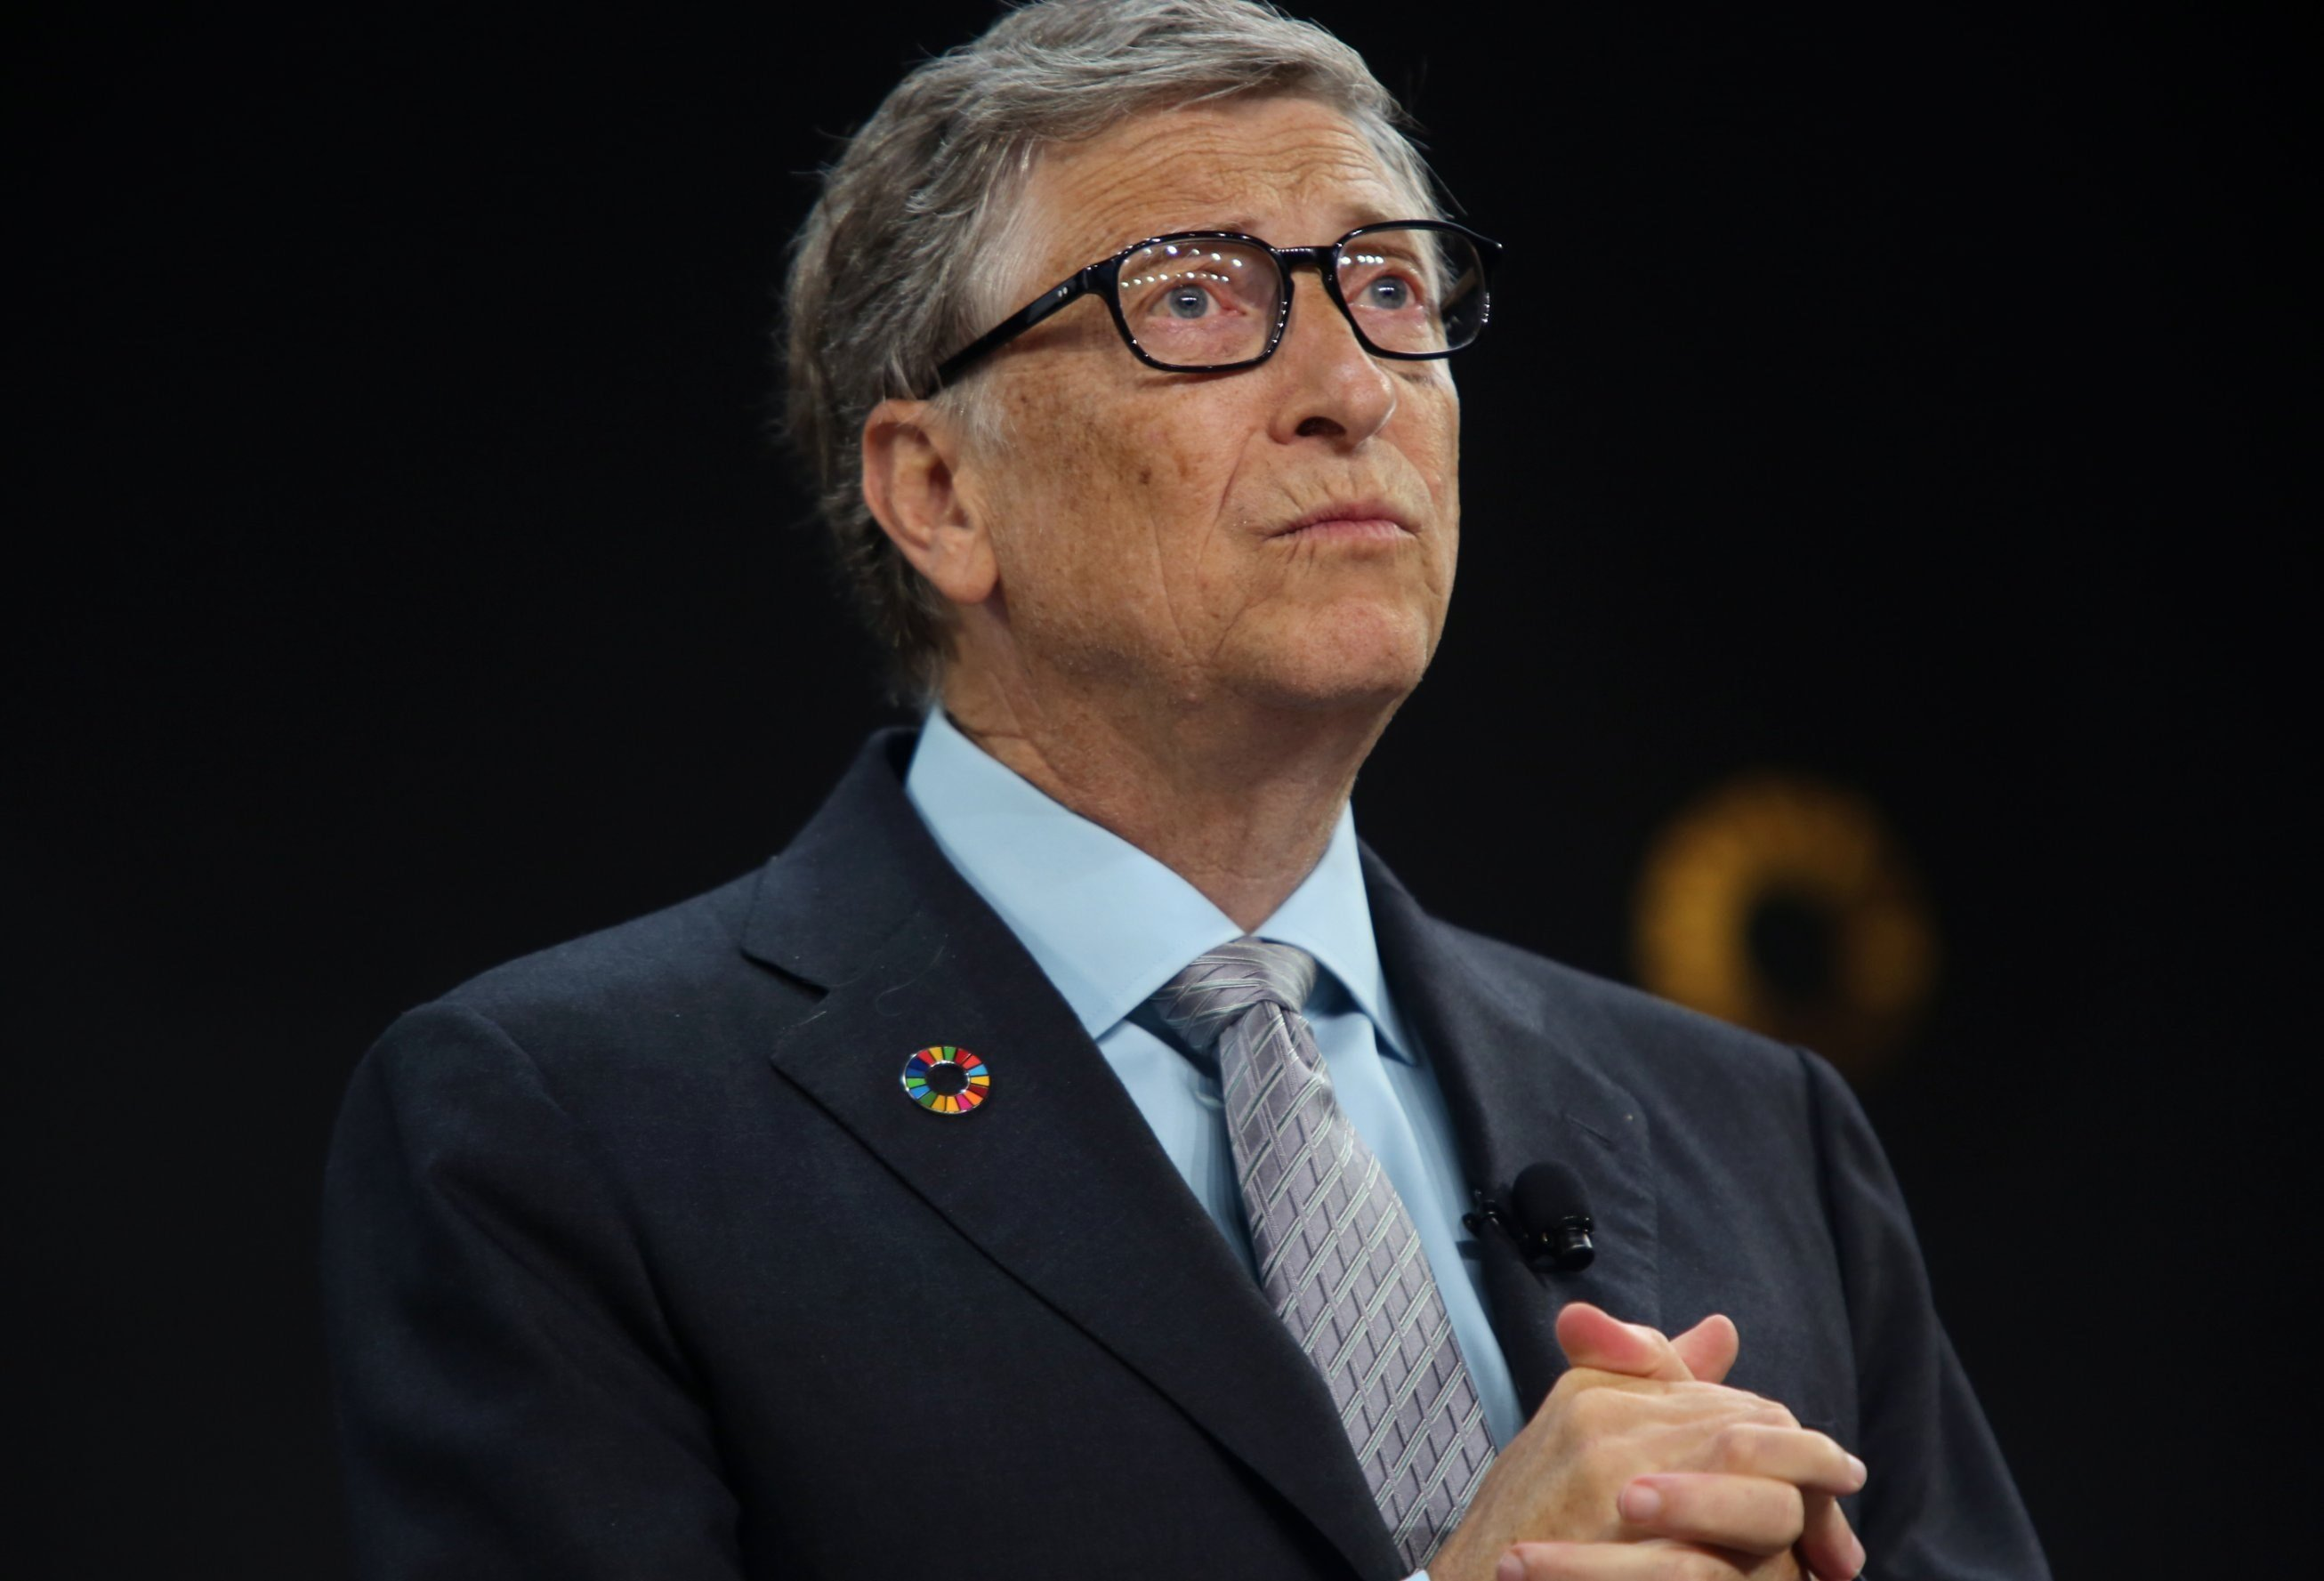 Bill Gates gives college grads his favorite book of 2018